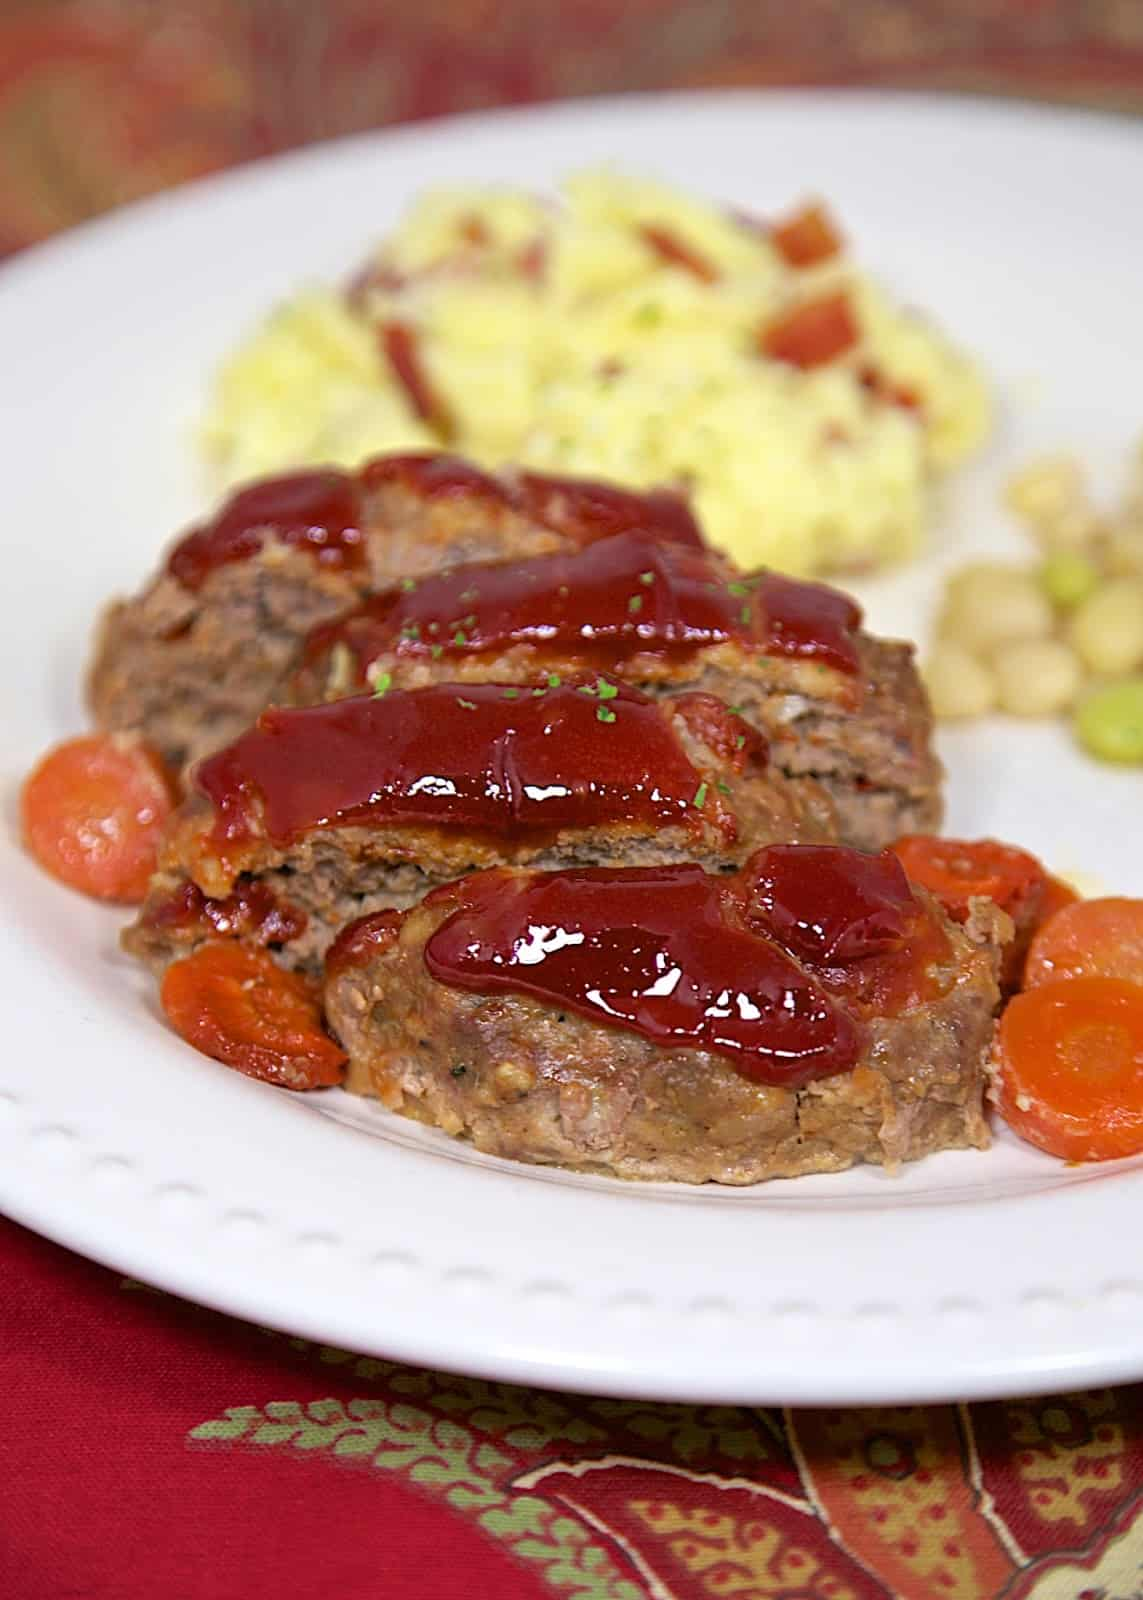 Mom's Meatloaf Recipe - comfort food at its best! This recipe makes 2 small loaves - serve one for dinner and serve leftovers as sandwiches for lunch the next day.